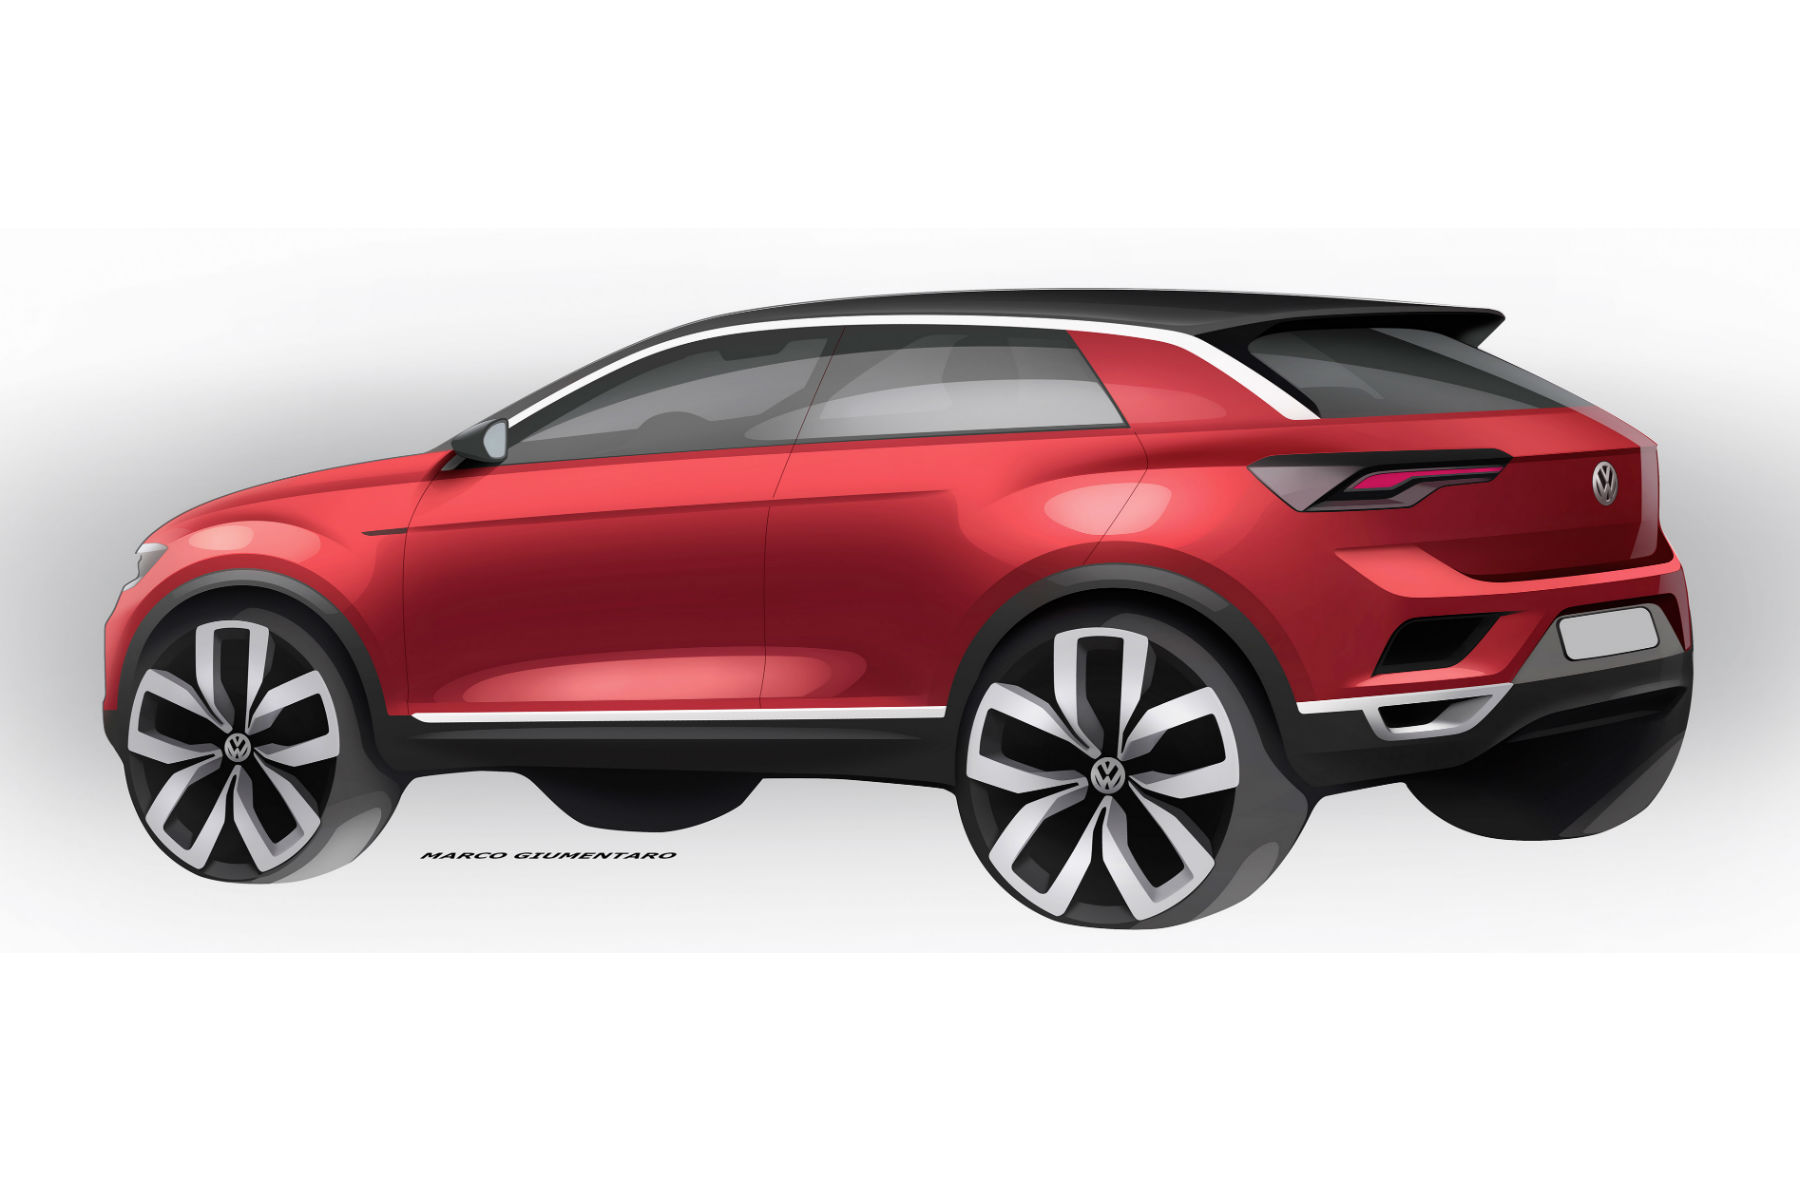 Volkswagen T-Roc teased ahead of next week's debut